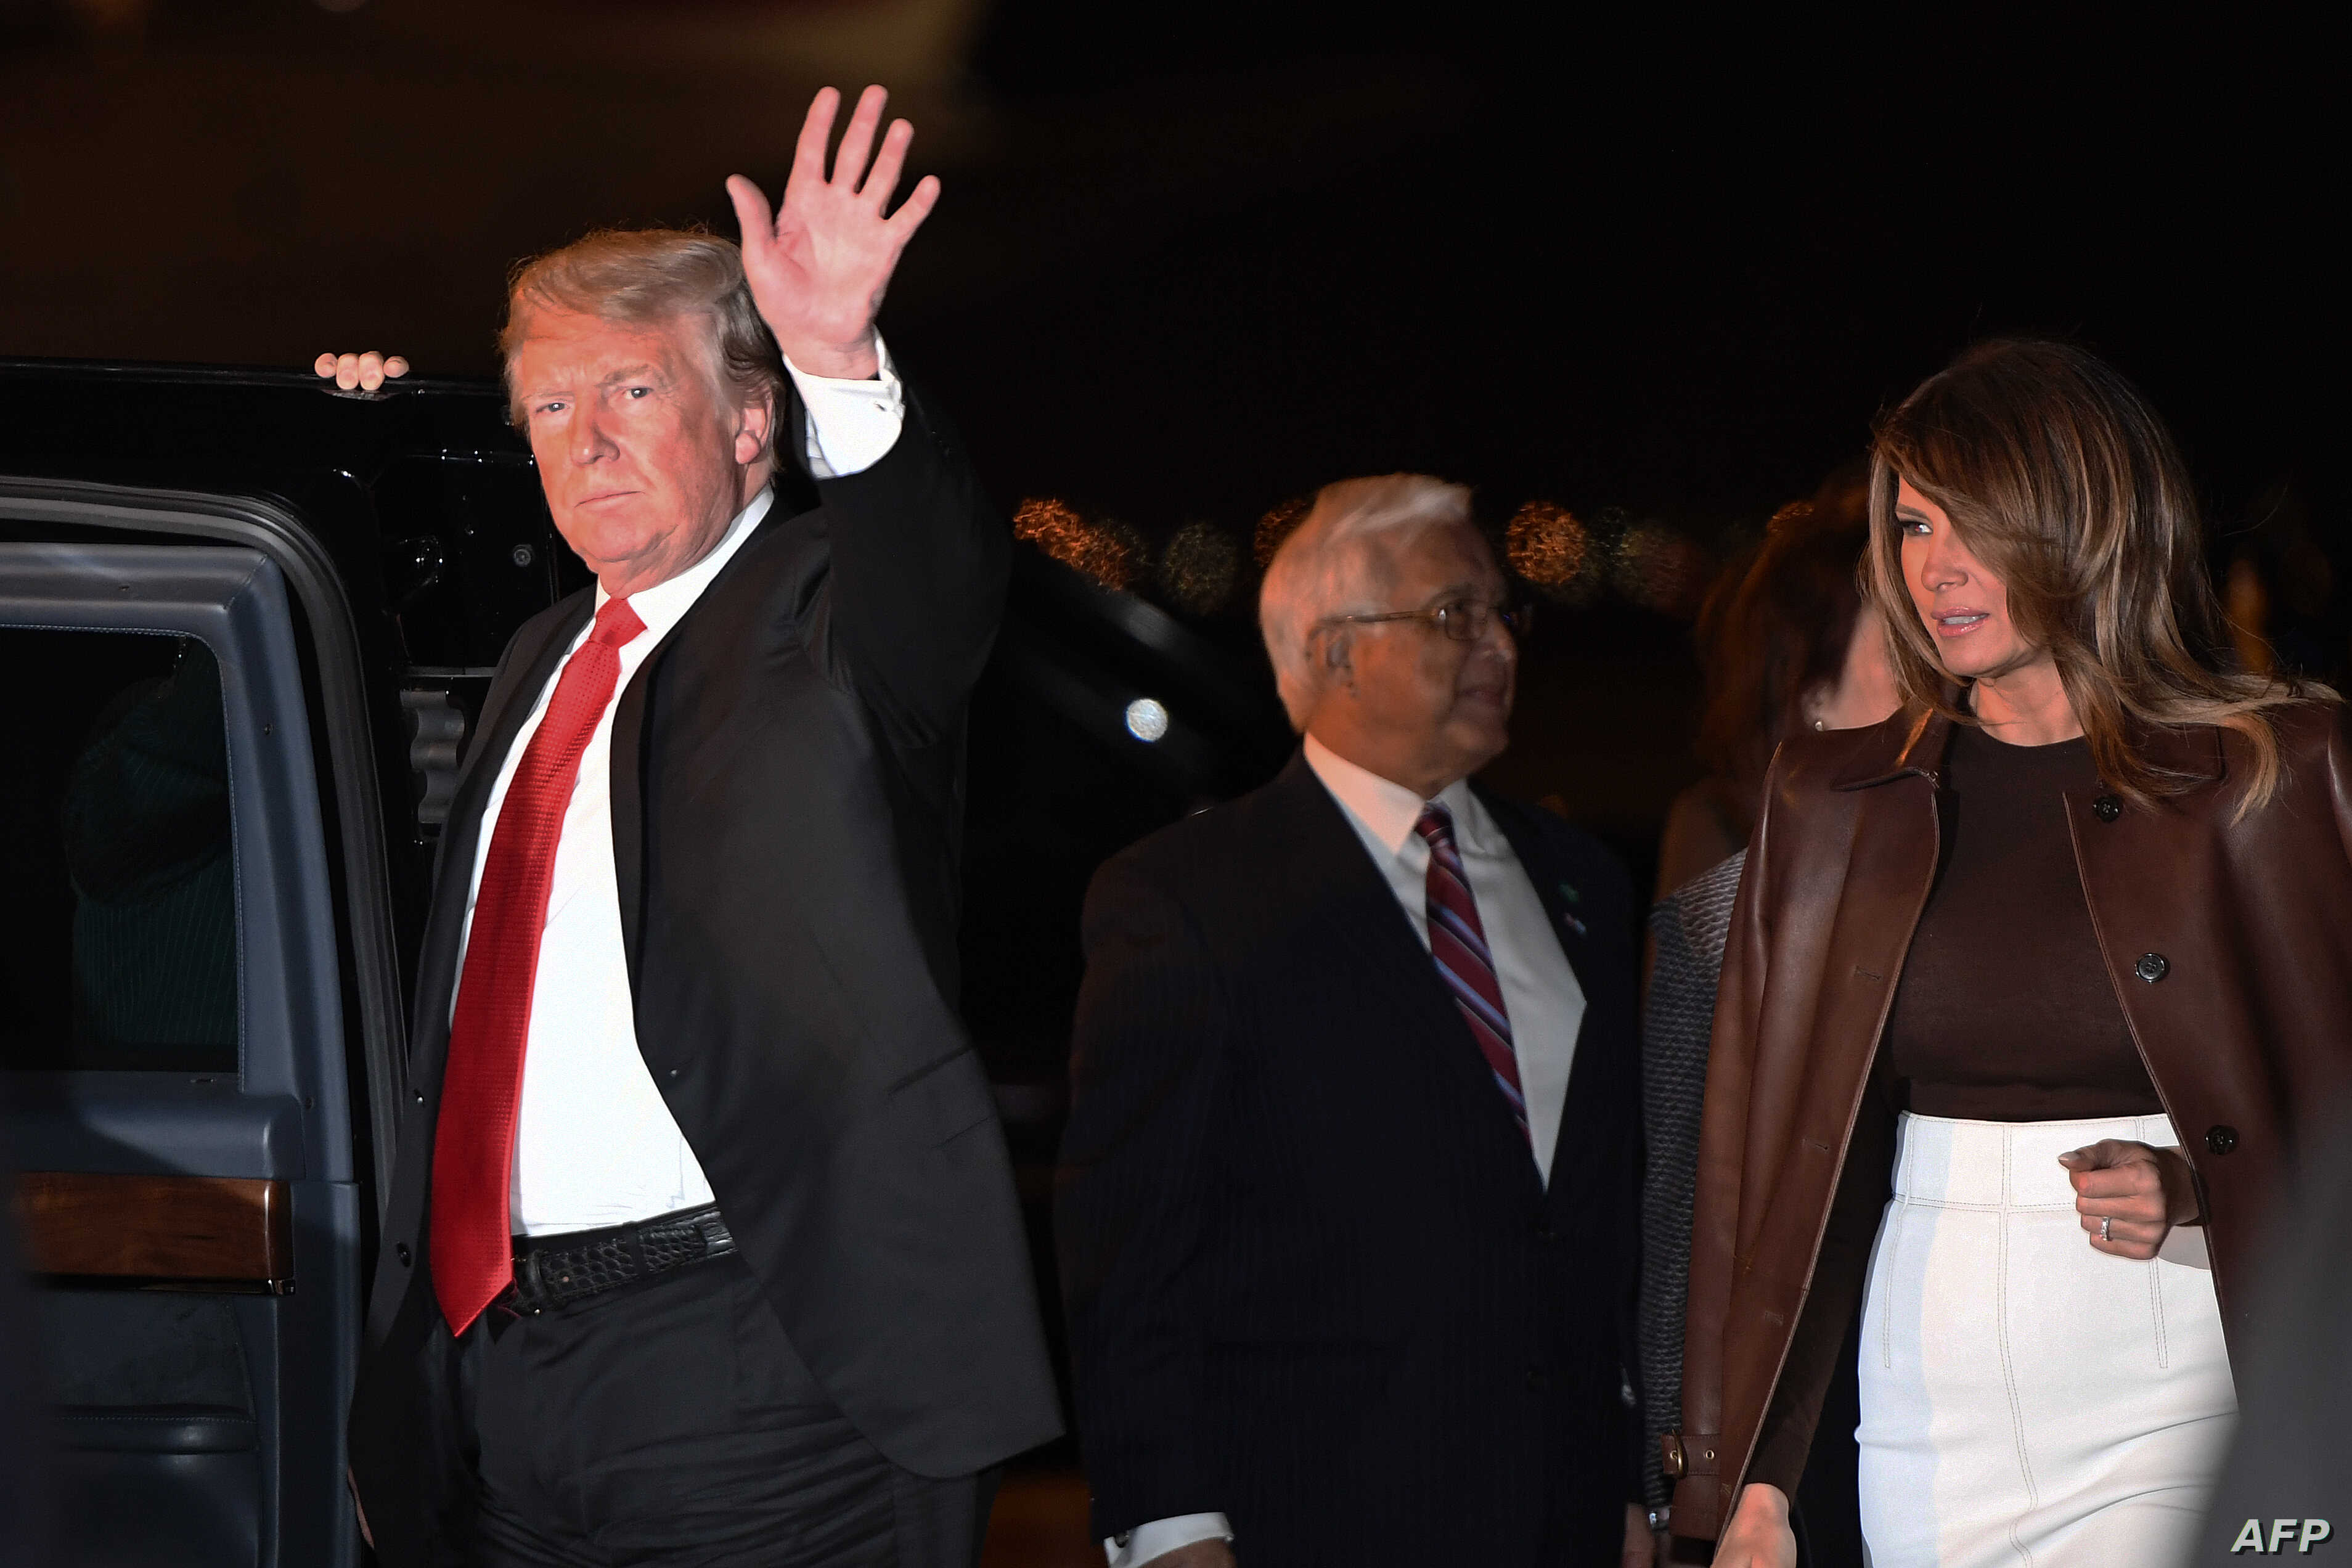 U.S. President Donald Trump and first lady Melania Trump disembark from Air Force One upon arrival at Ezeiza International Airport in Buenos Aires, Argentina, Nov. 29, 2018, as they travel to attend the G20 summit.